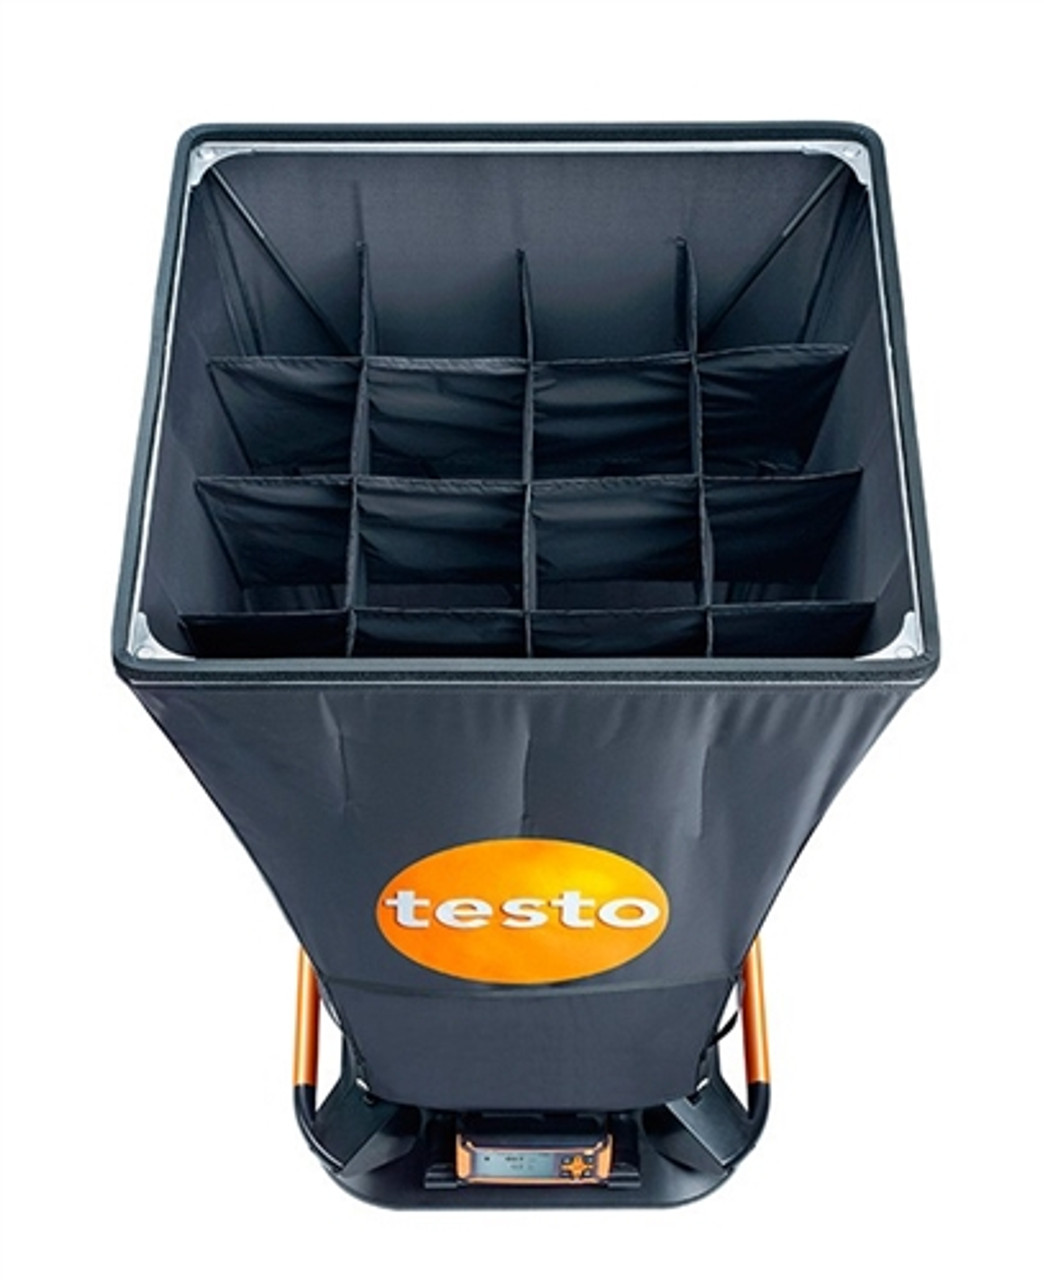 Testo 420 Flow hood kit and meter (Without NIST) 0563 4200